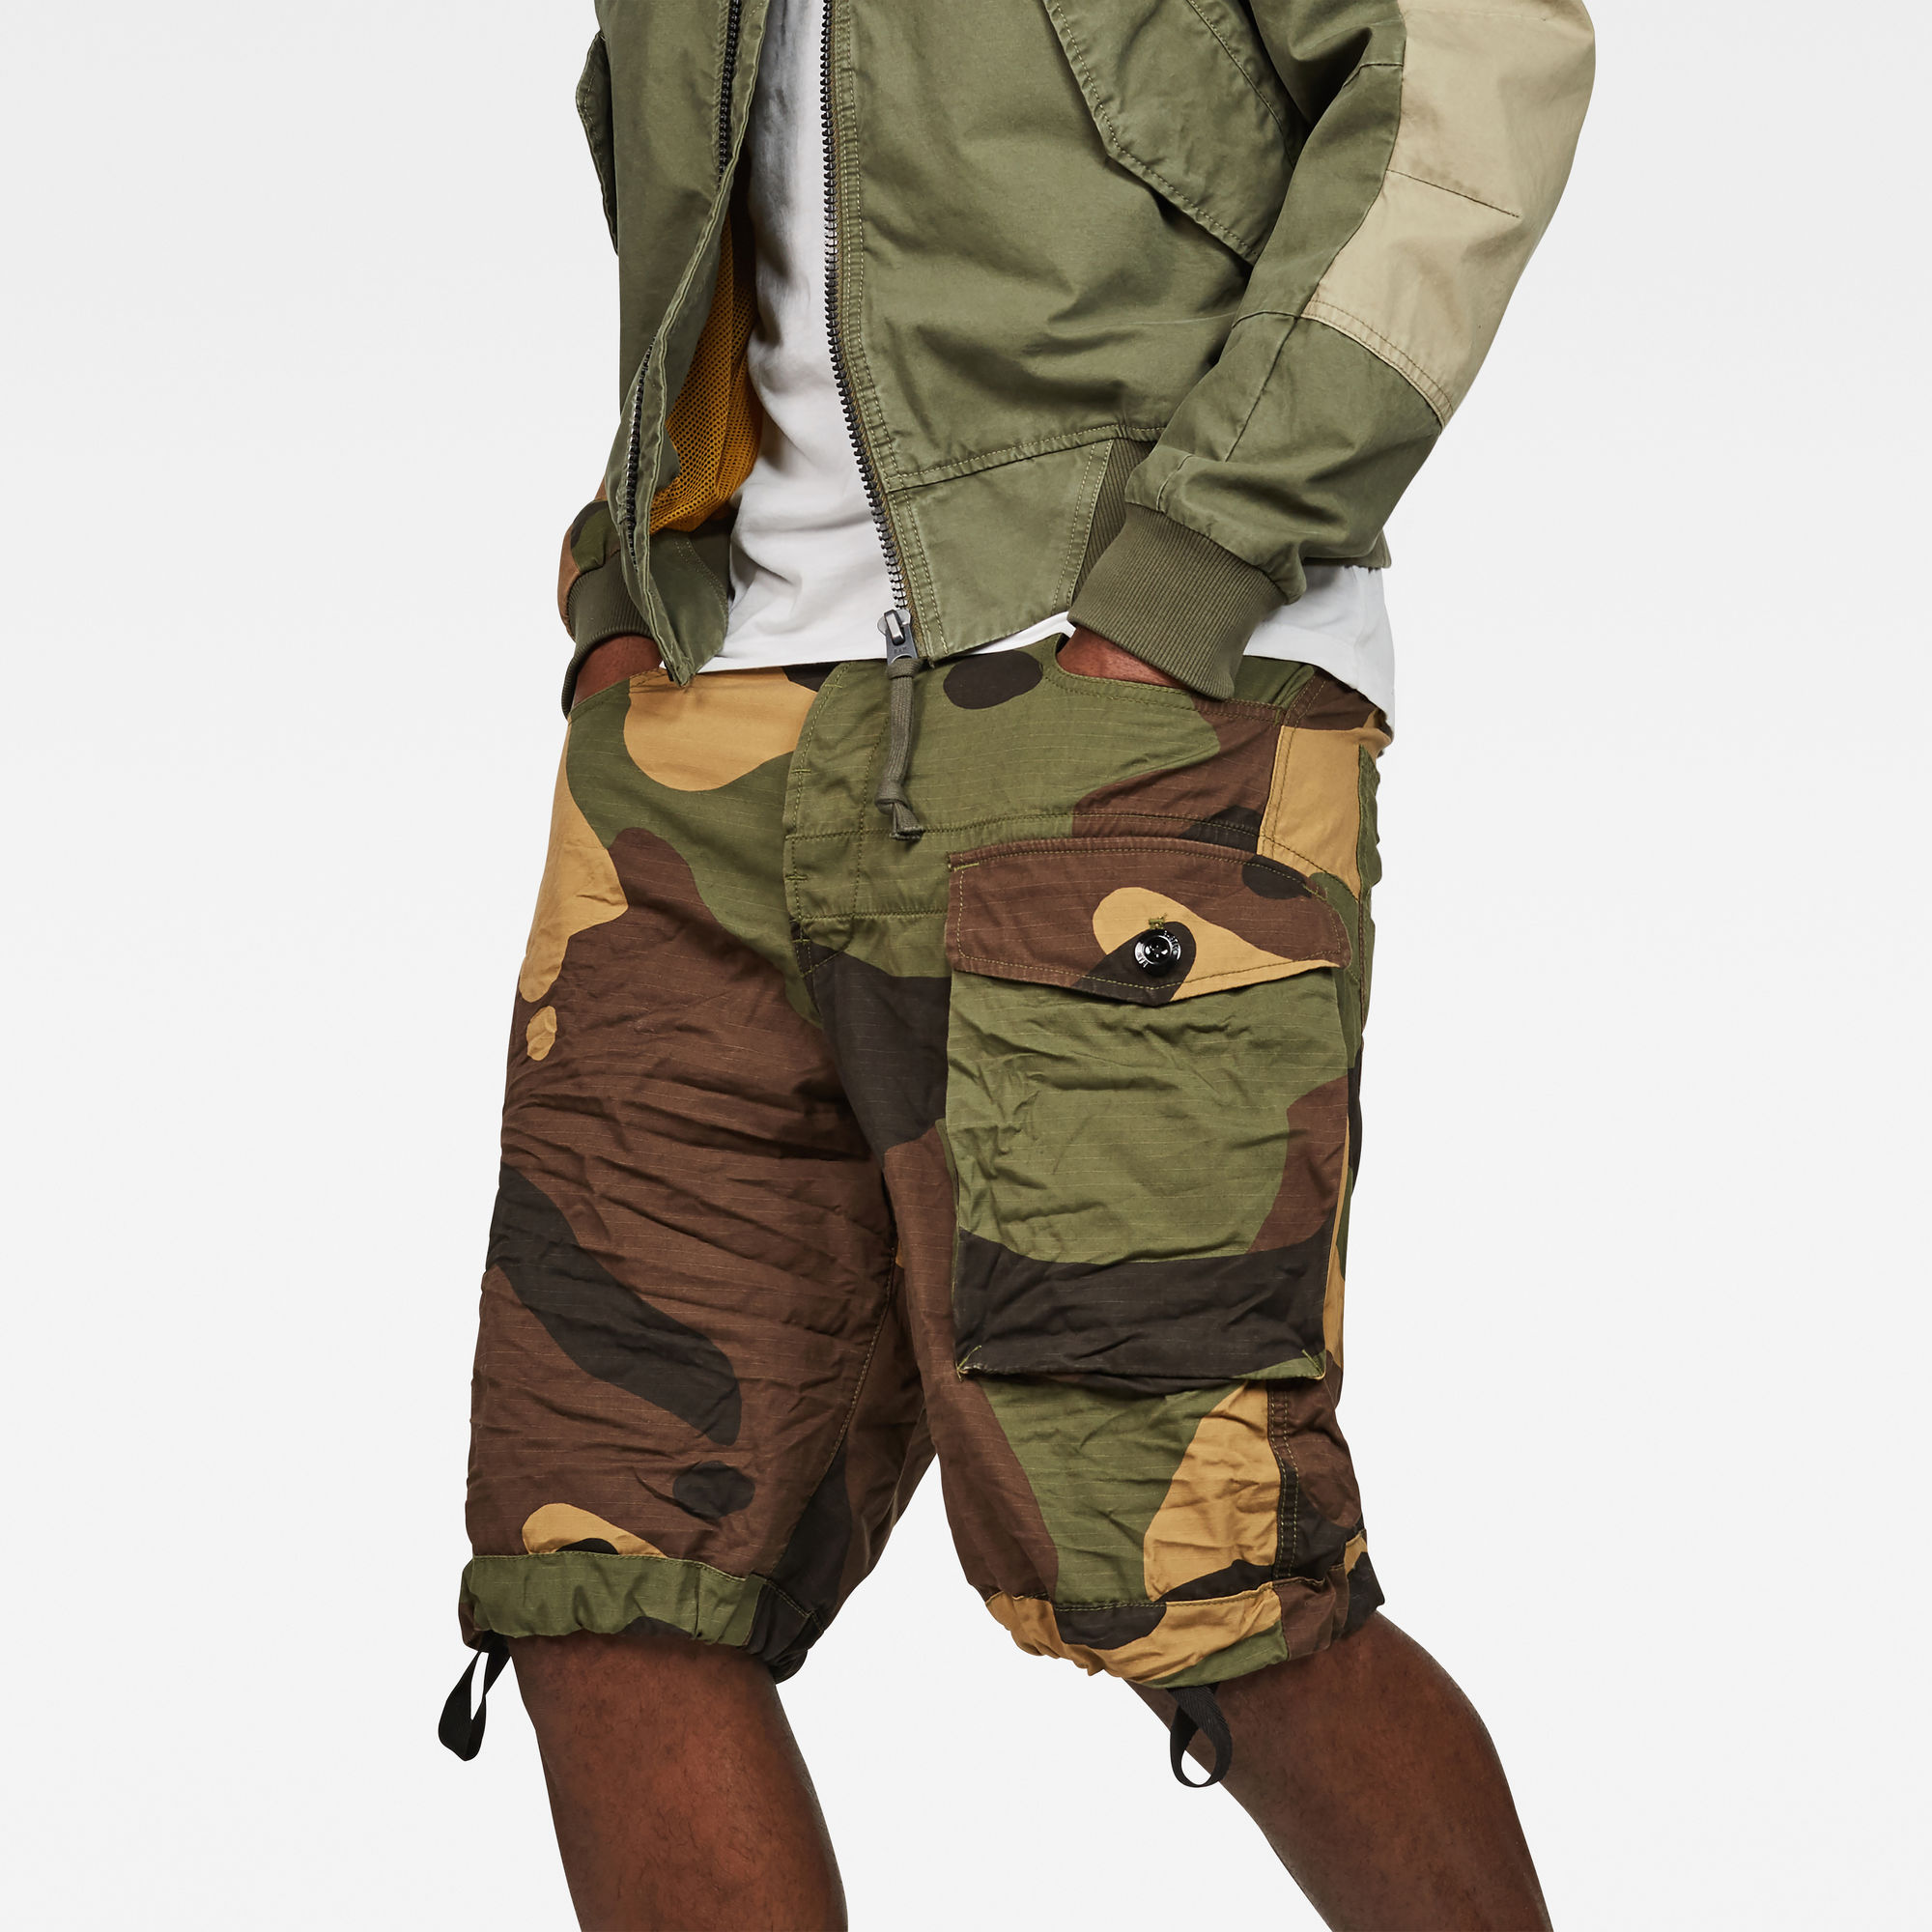 Tendric Deconstructed Loose 1 2-Length Shorts